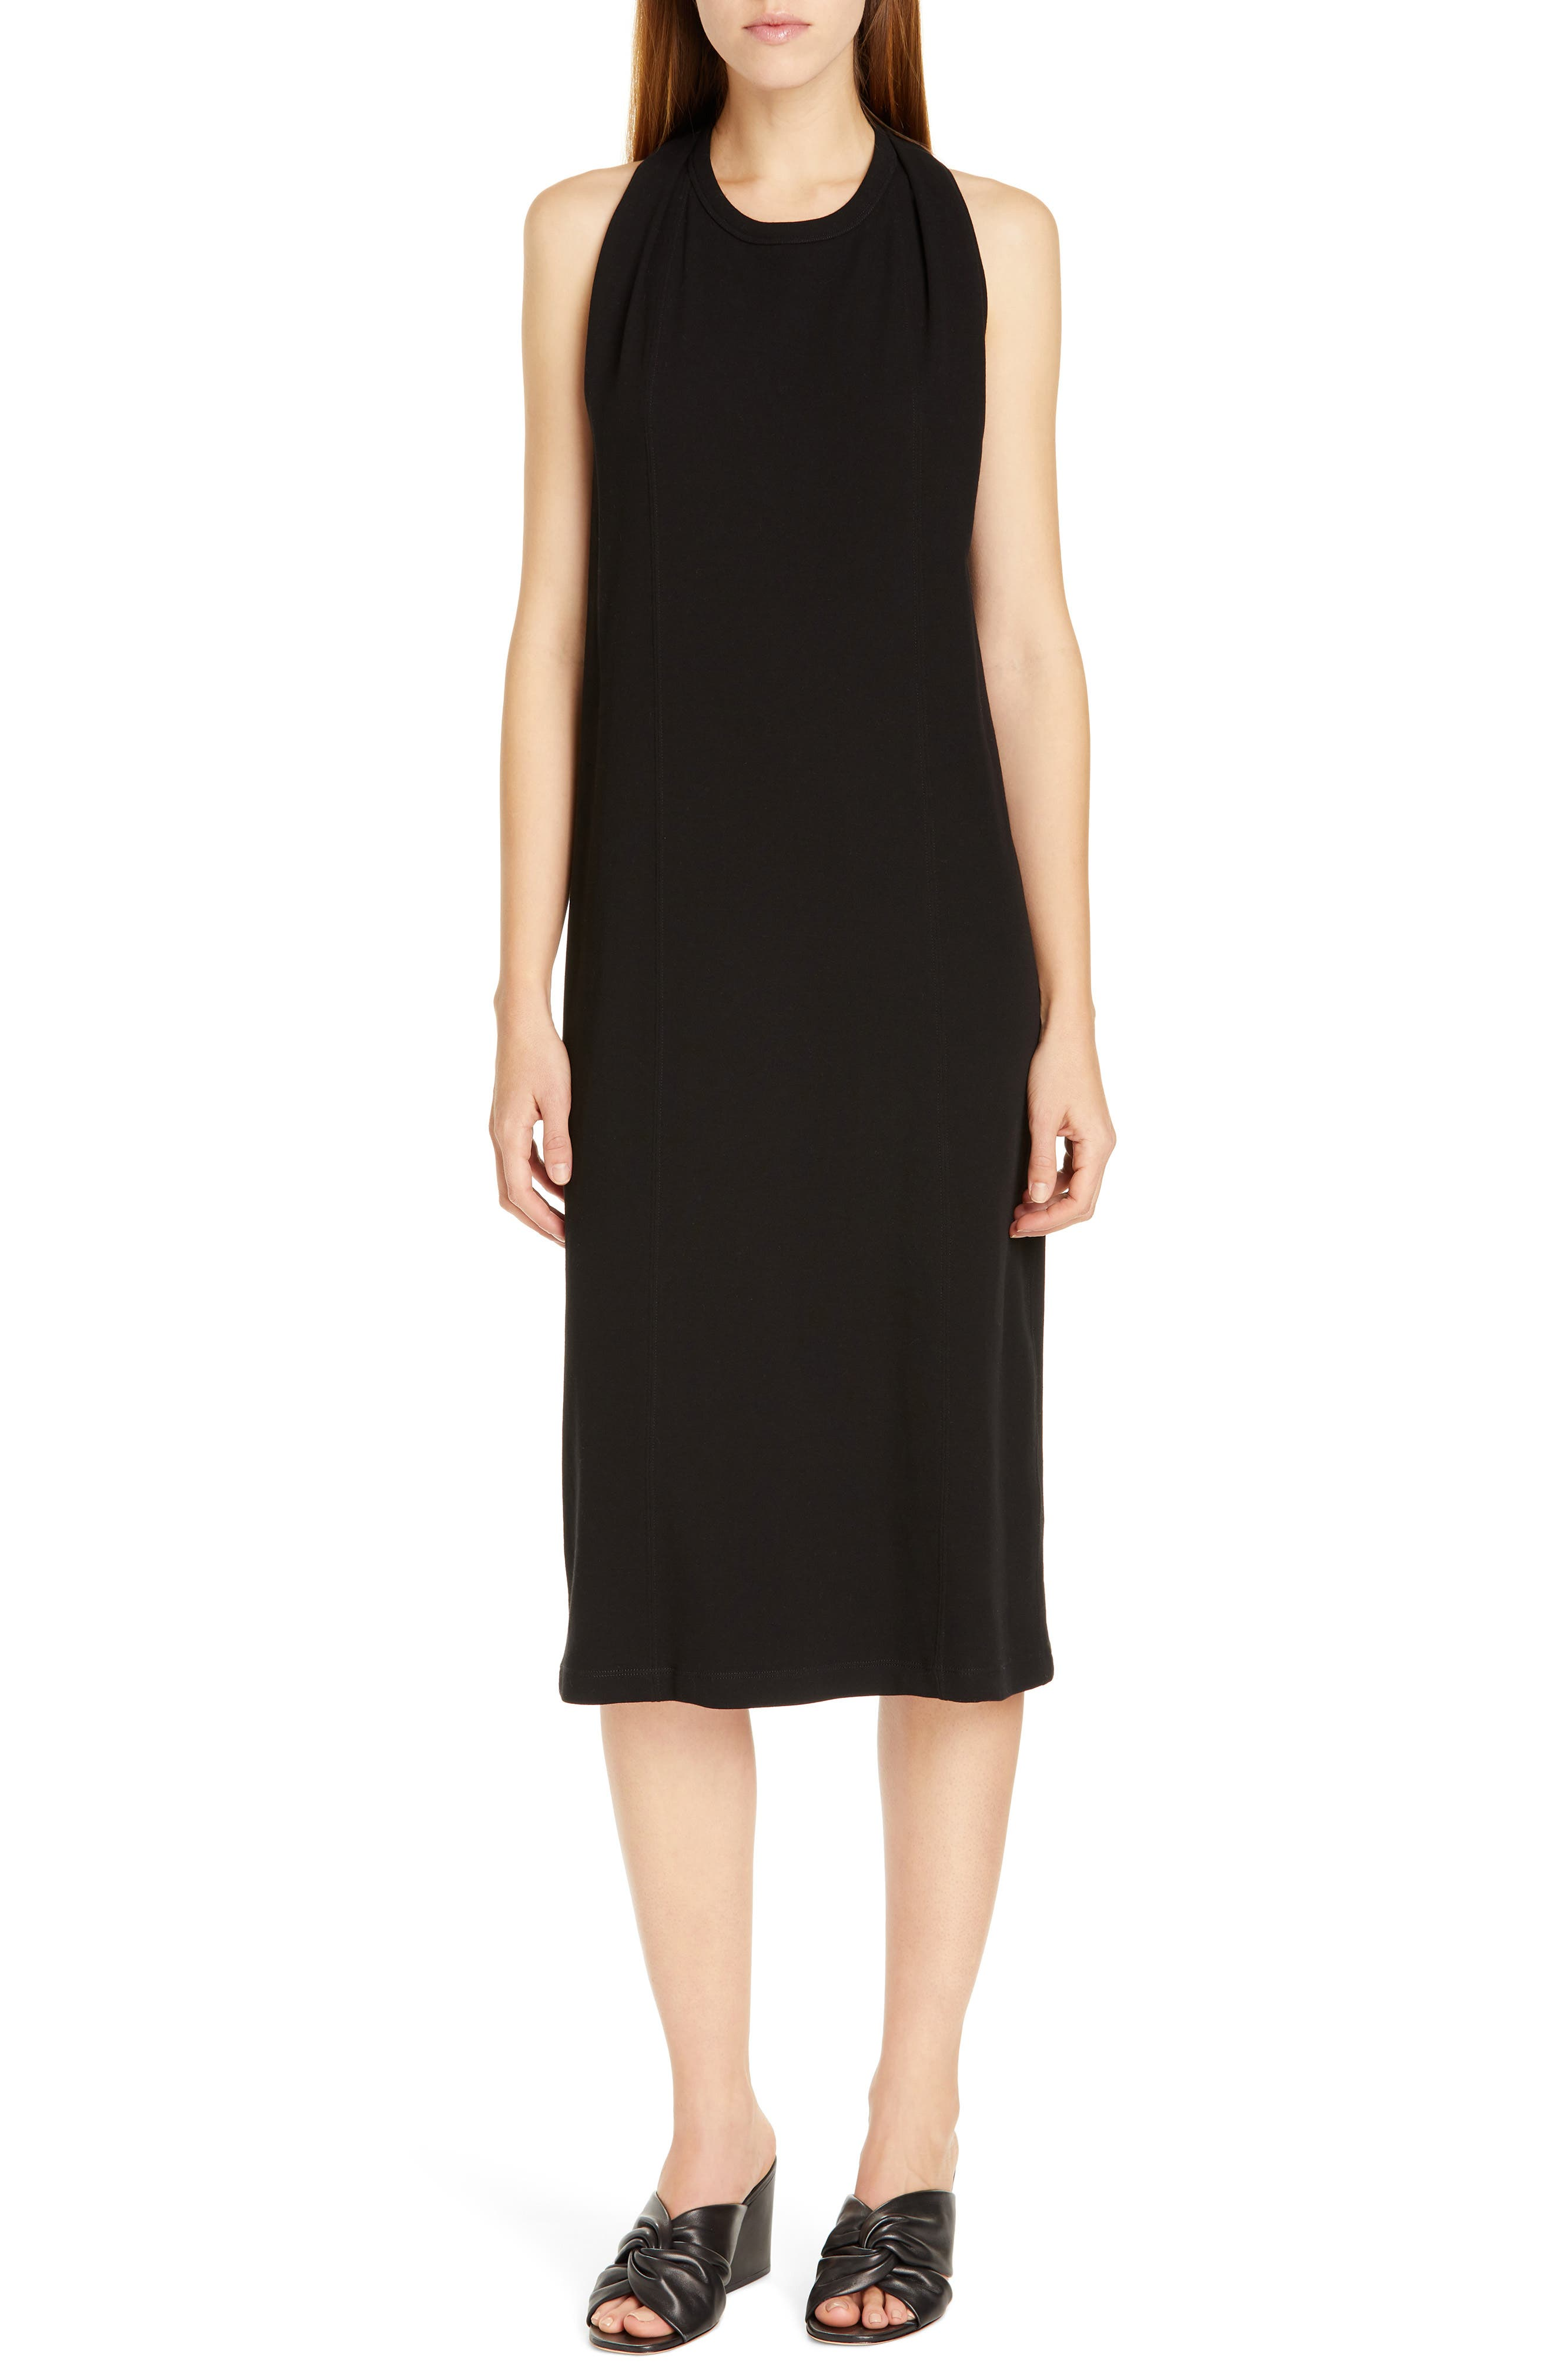 HELMUT LANG, Halter Neck Cotton Jersey Dress, Main thumbnail 1, color, BLACK